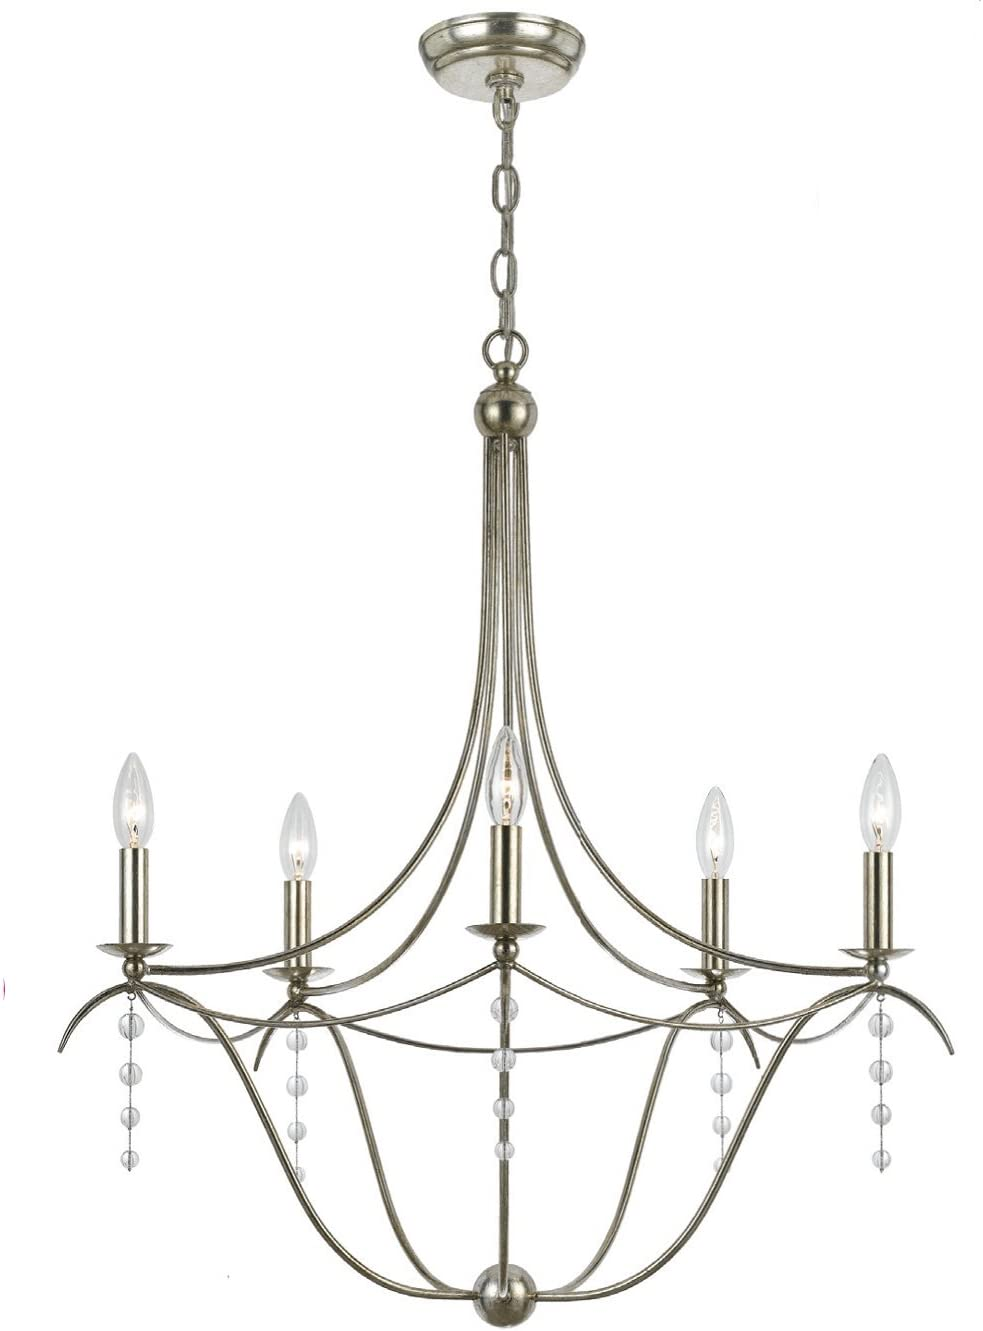 Crystorama 435-SA Traditional Five Light Chandelier from Metro collection in Pwt, Nckl, B S, Slvr.finish,